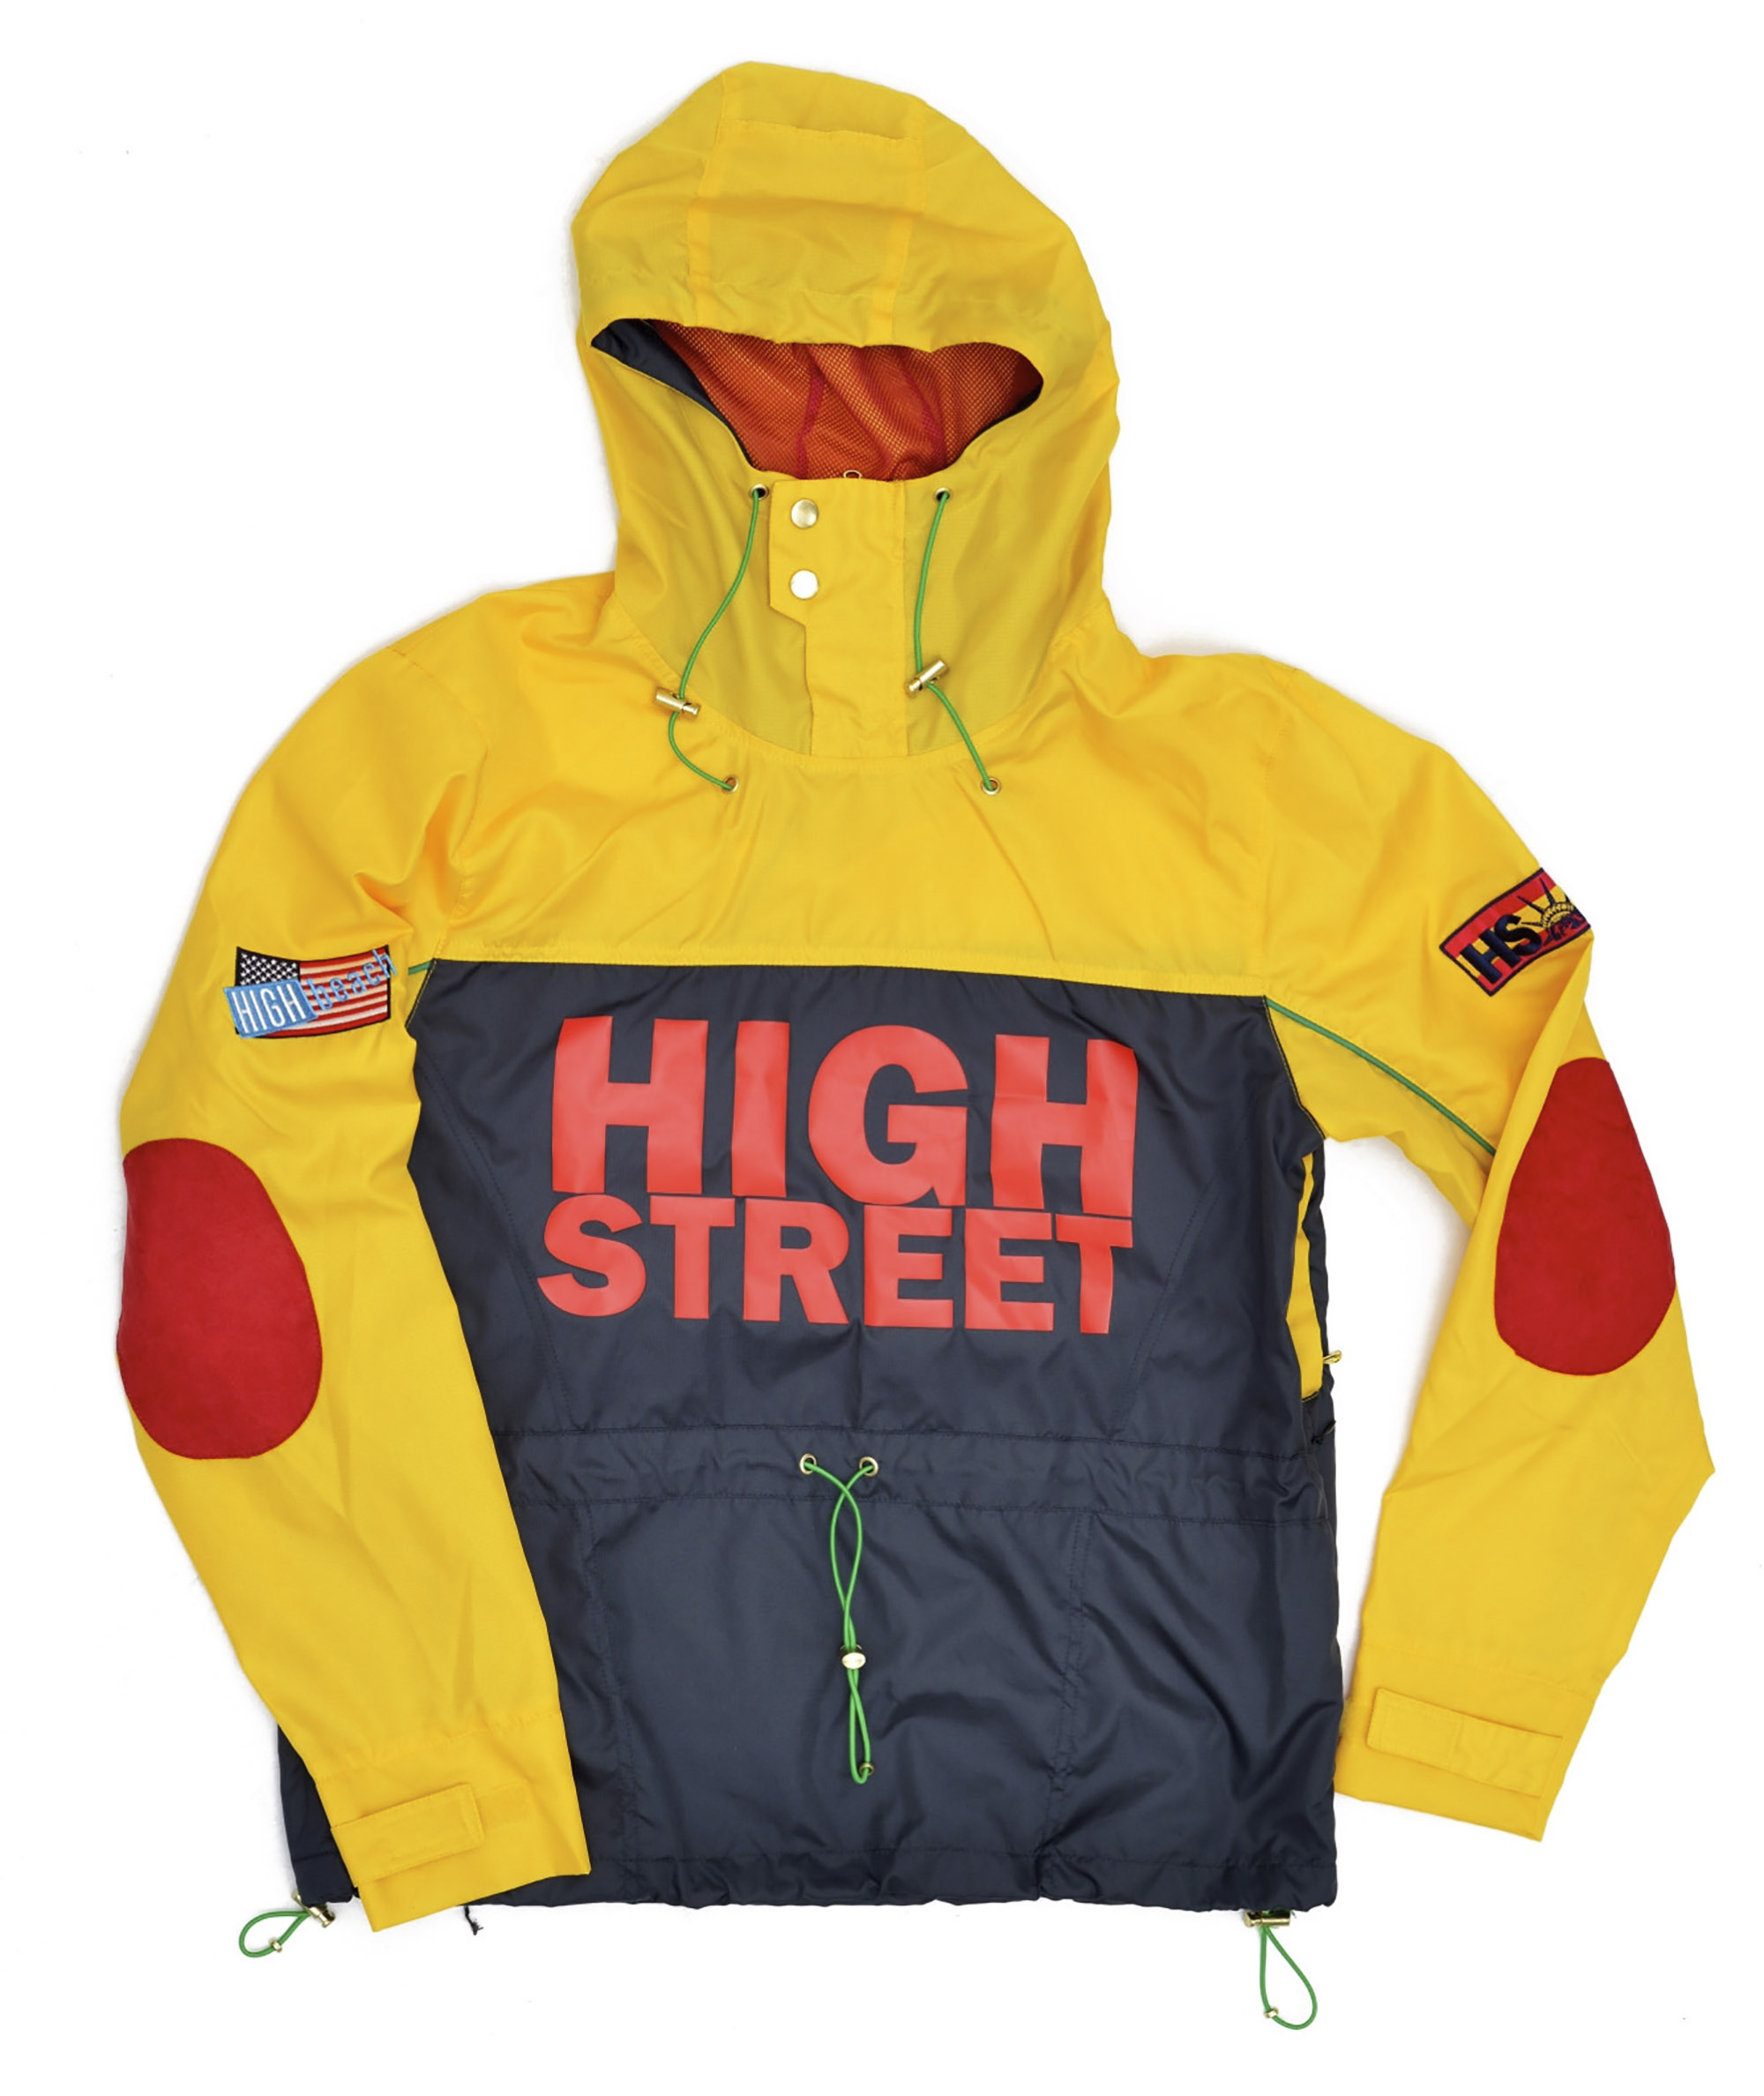 highstreet-nyc-high-beach-tech-breaker-jacket copy.jpg